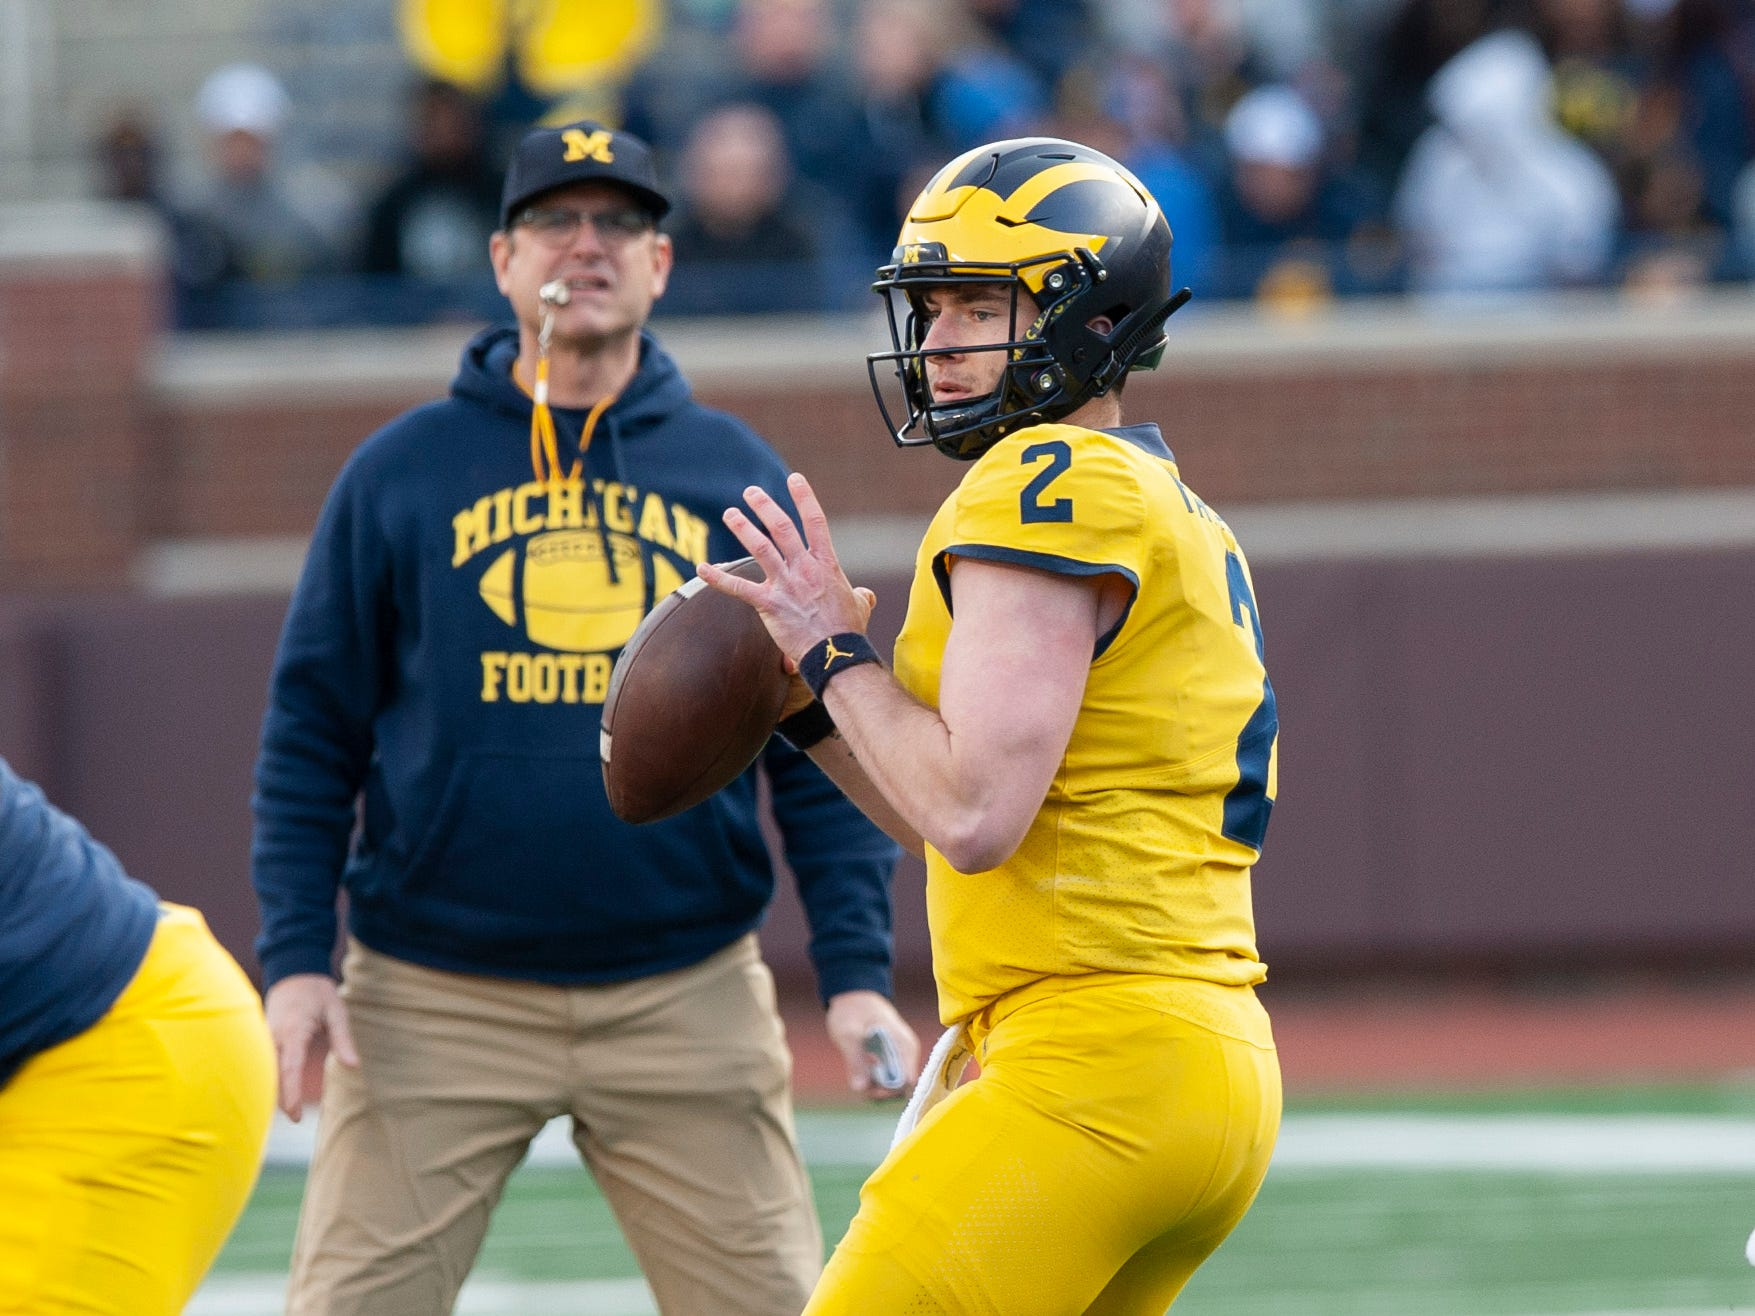 Michigan QB Shea Patterson looks for an open receiver with head coach Jim Harbaugh looking on during the scrimmage.